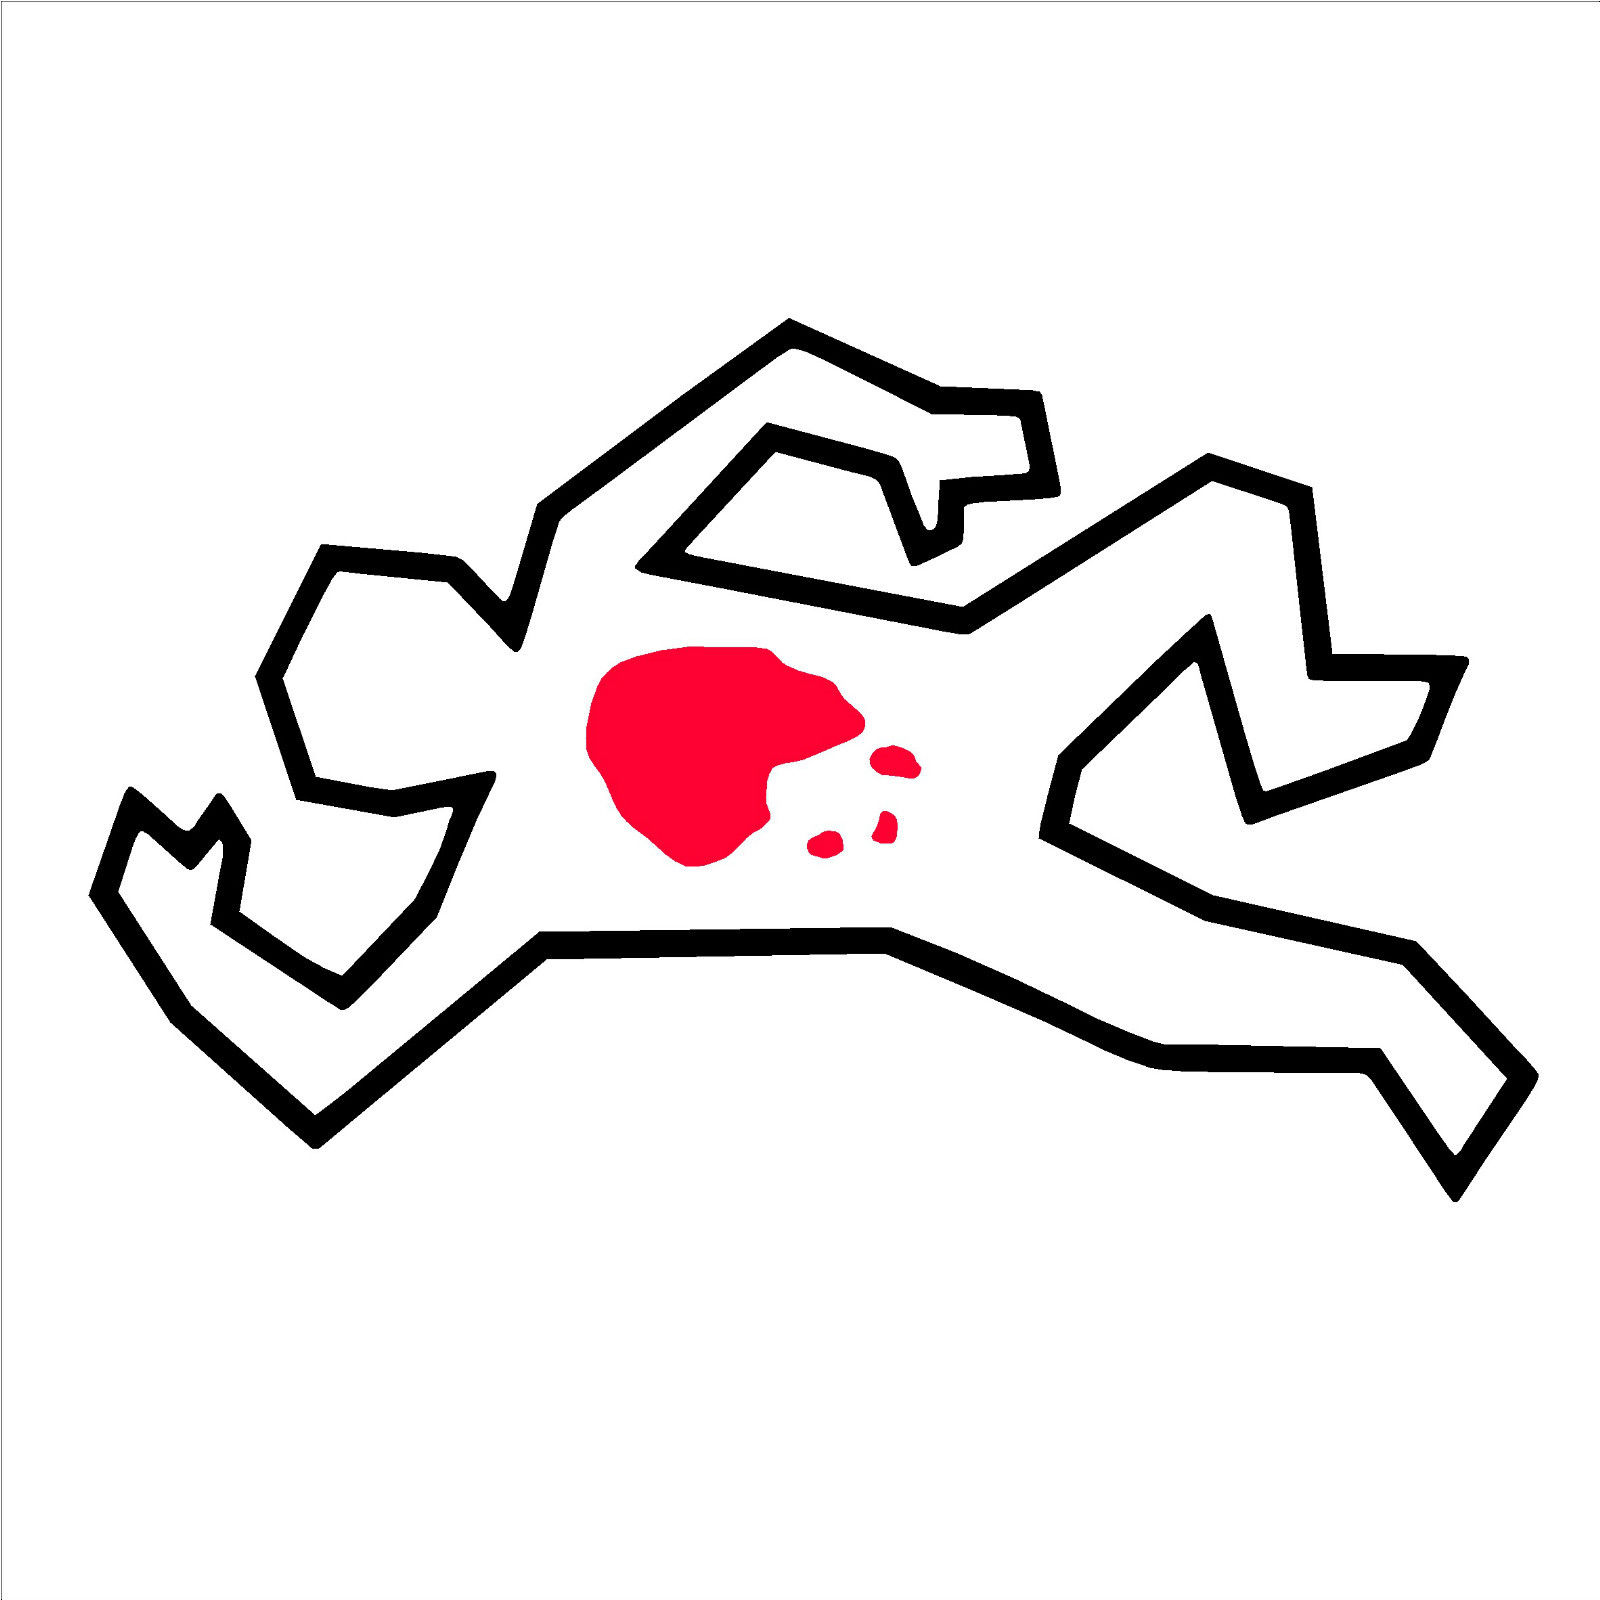 Dead clipart dead body outline. Cartoon old chef